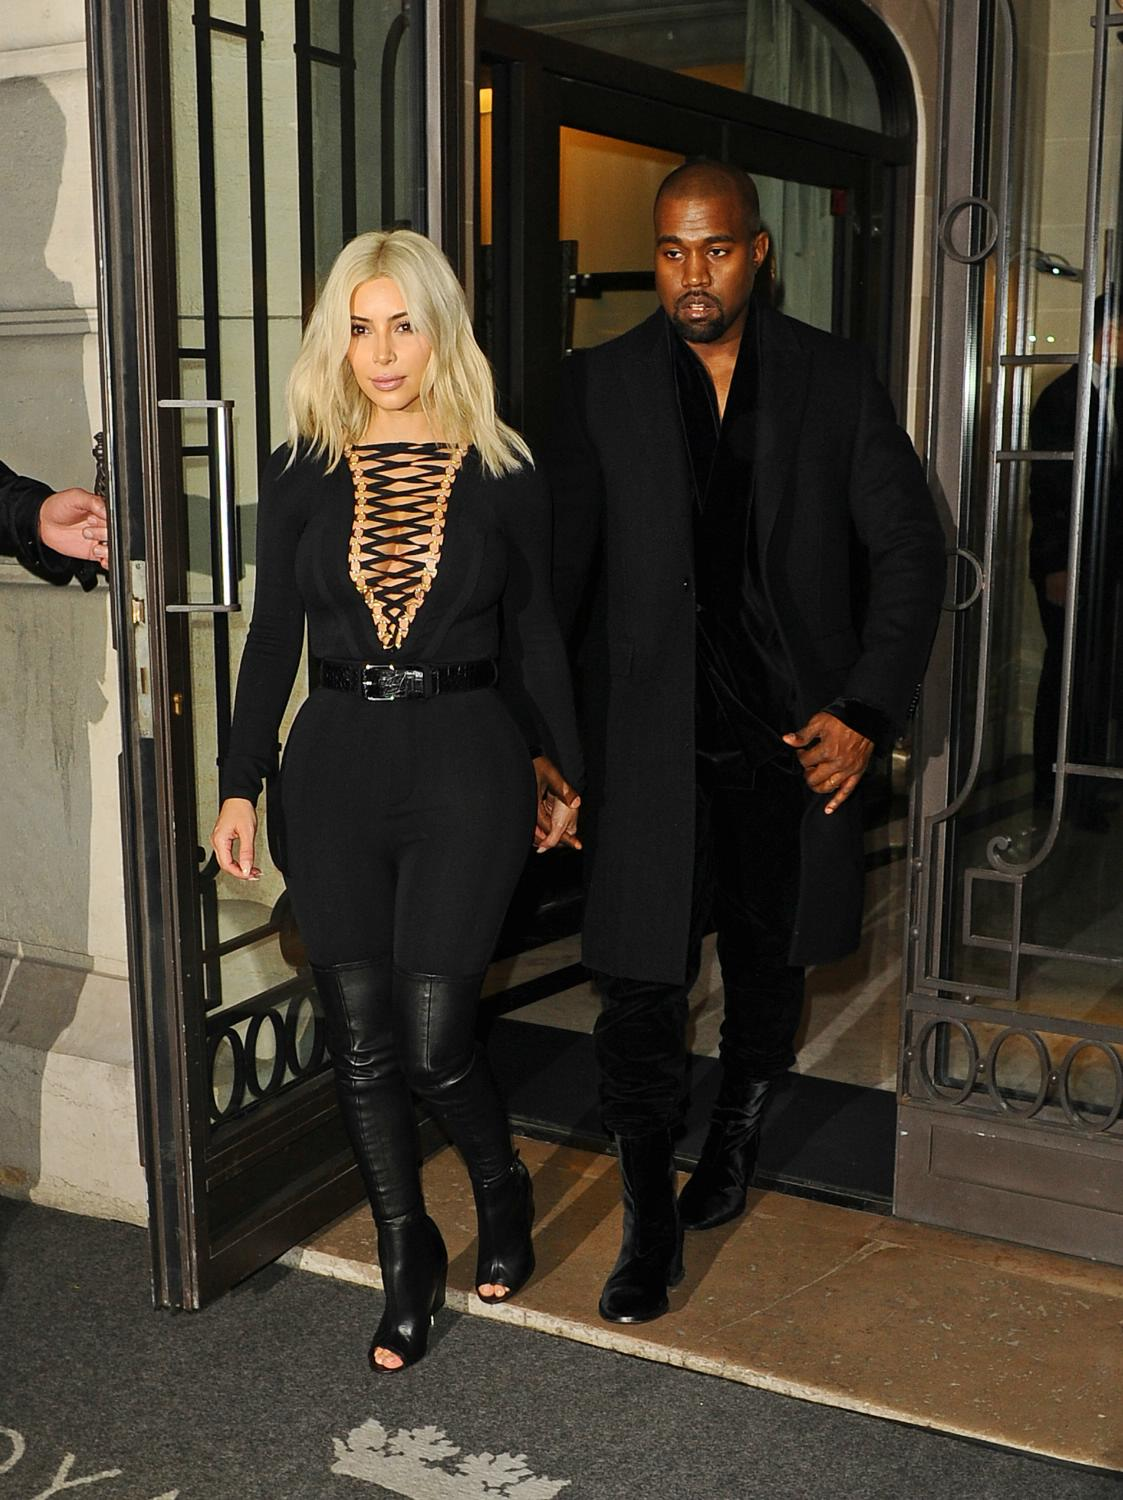 Kim-Kardashian-Kanye-West-Givency-March8-2015-paris